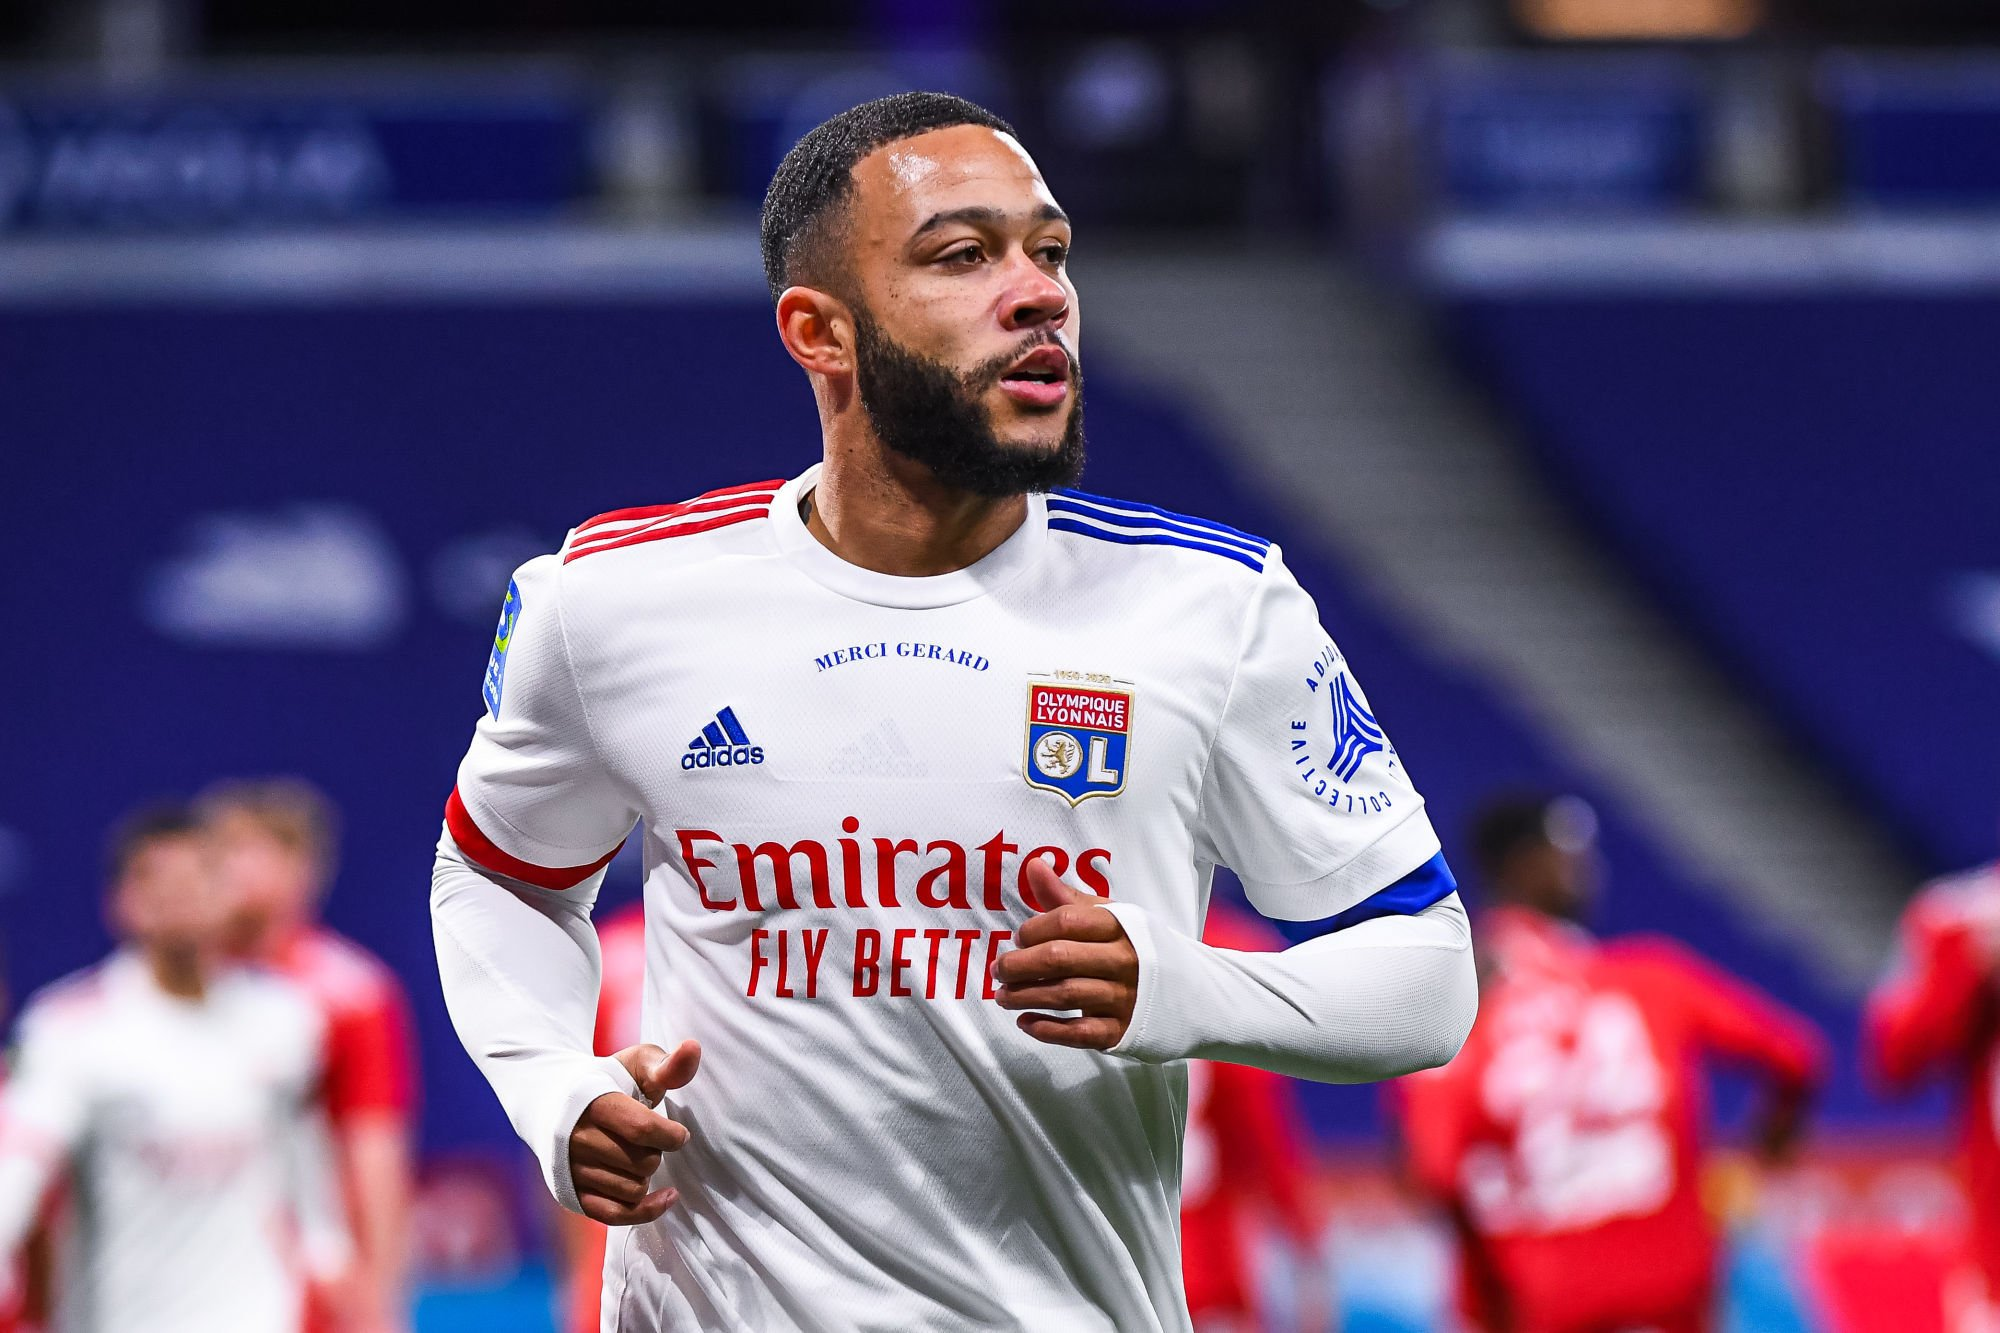 Memphis Depay will be aiming to help Lyon qualify Lyon for European football